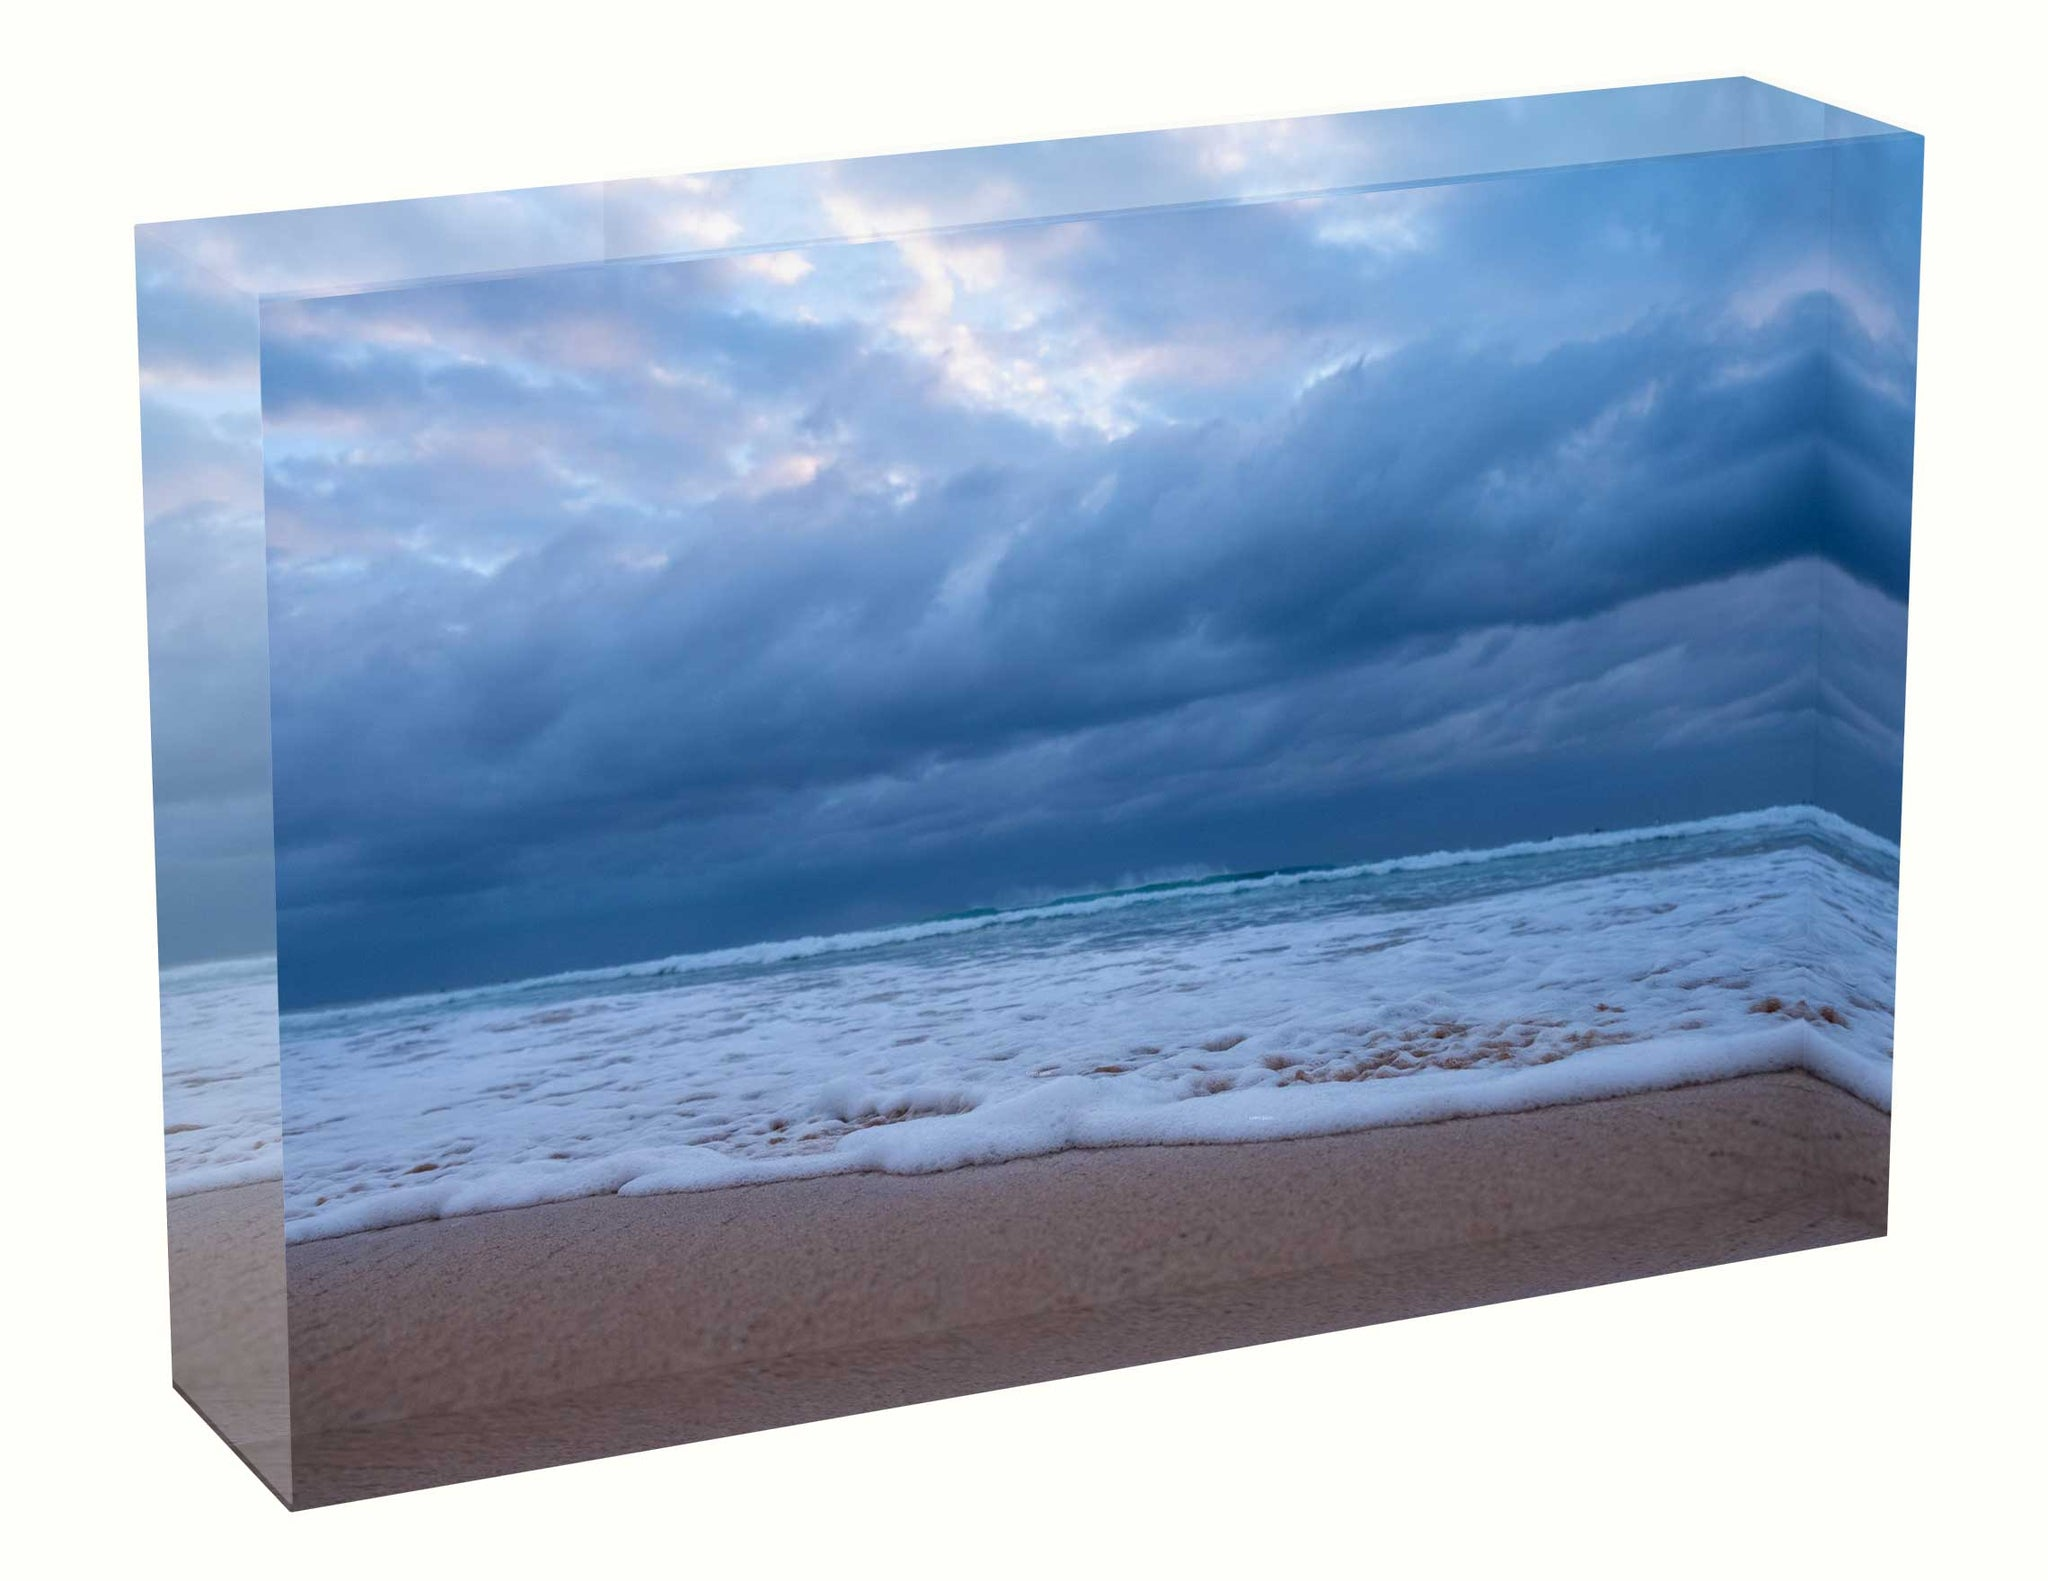 acrylic block Sunrise photo from the 6th March 2021 at Manly beach in Sydney